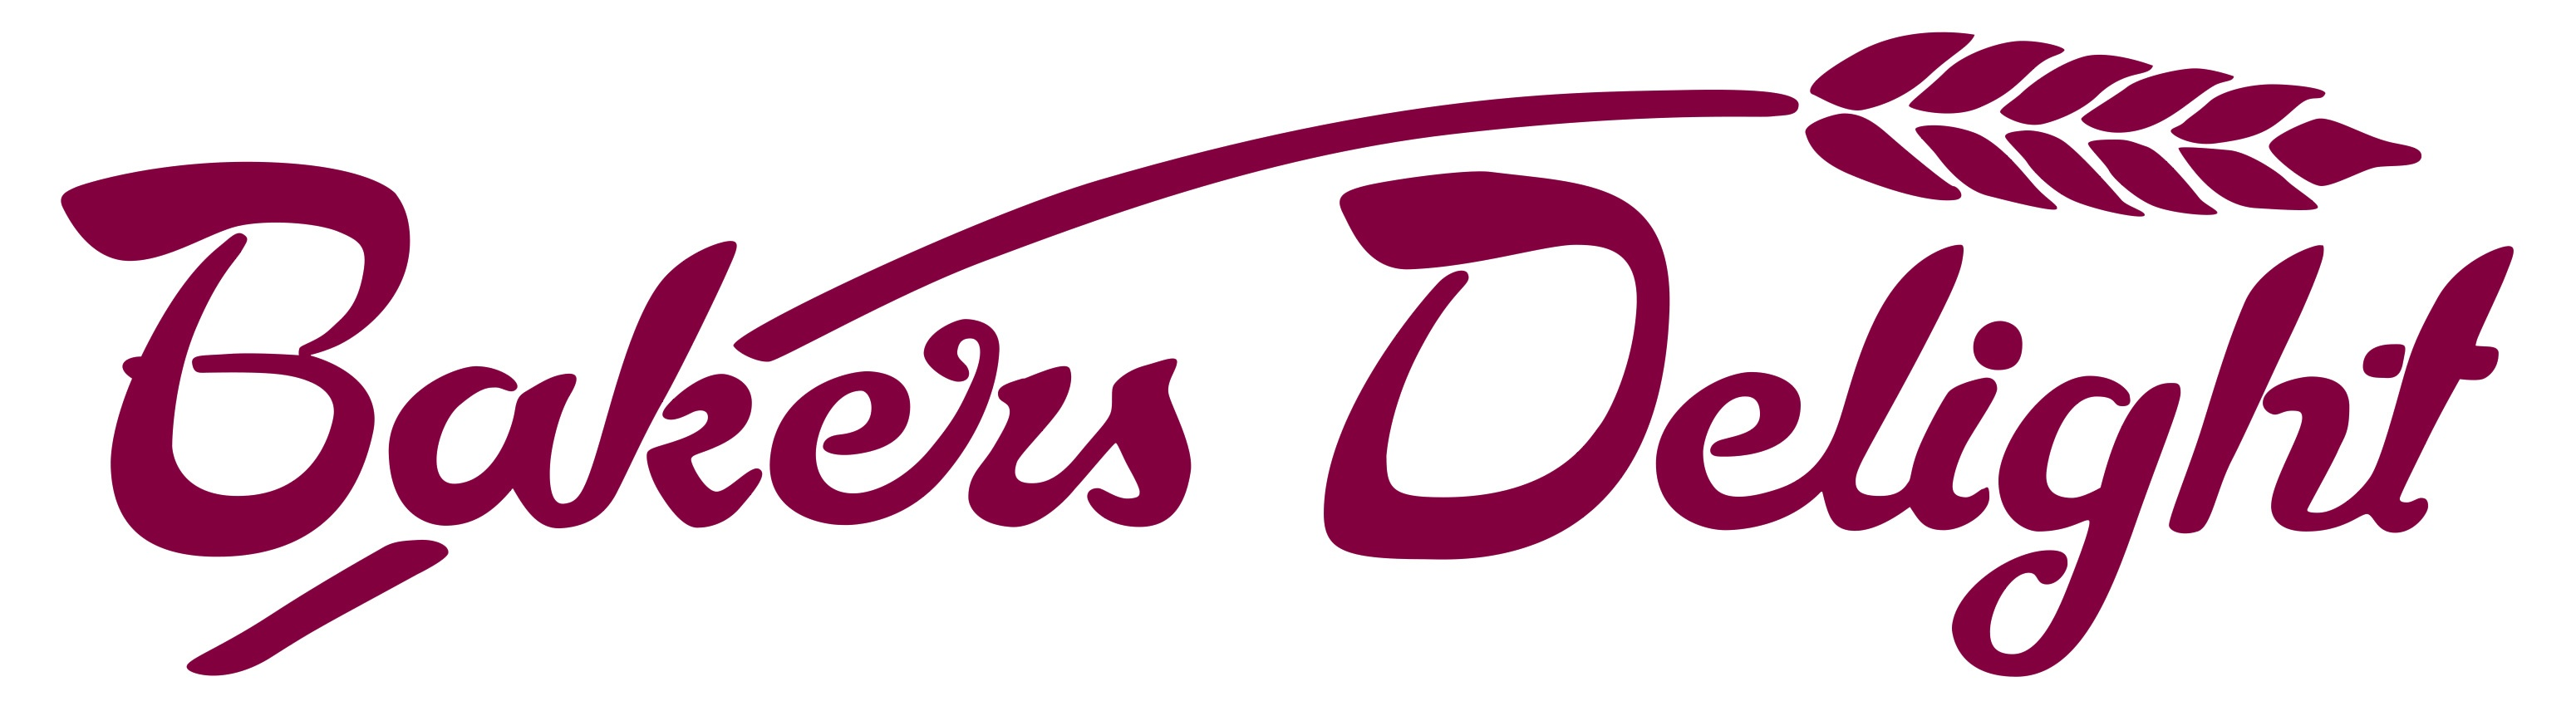 Bakers Delight Bakery Logo